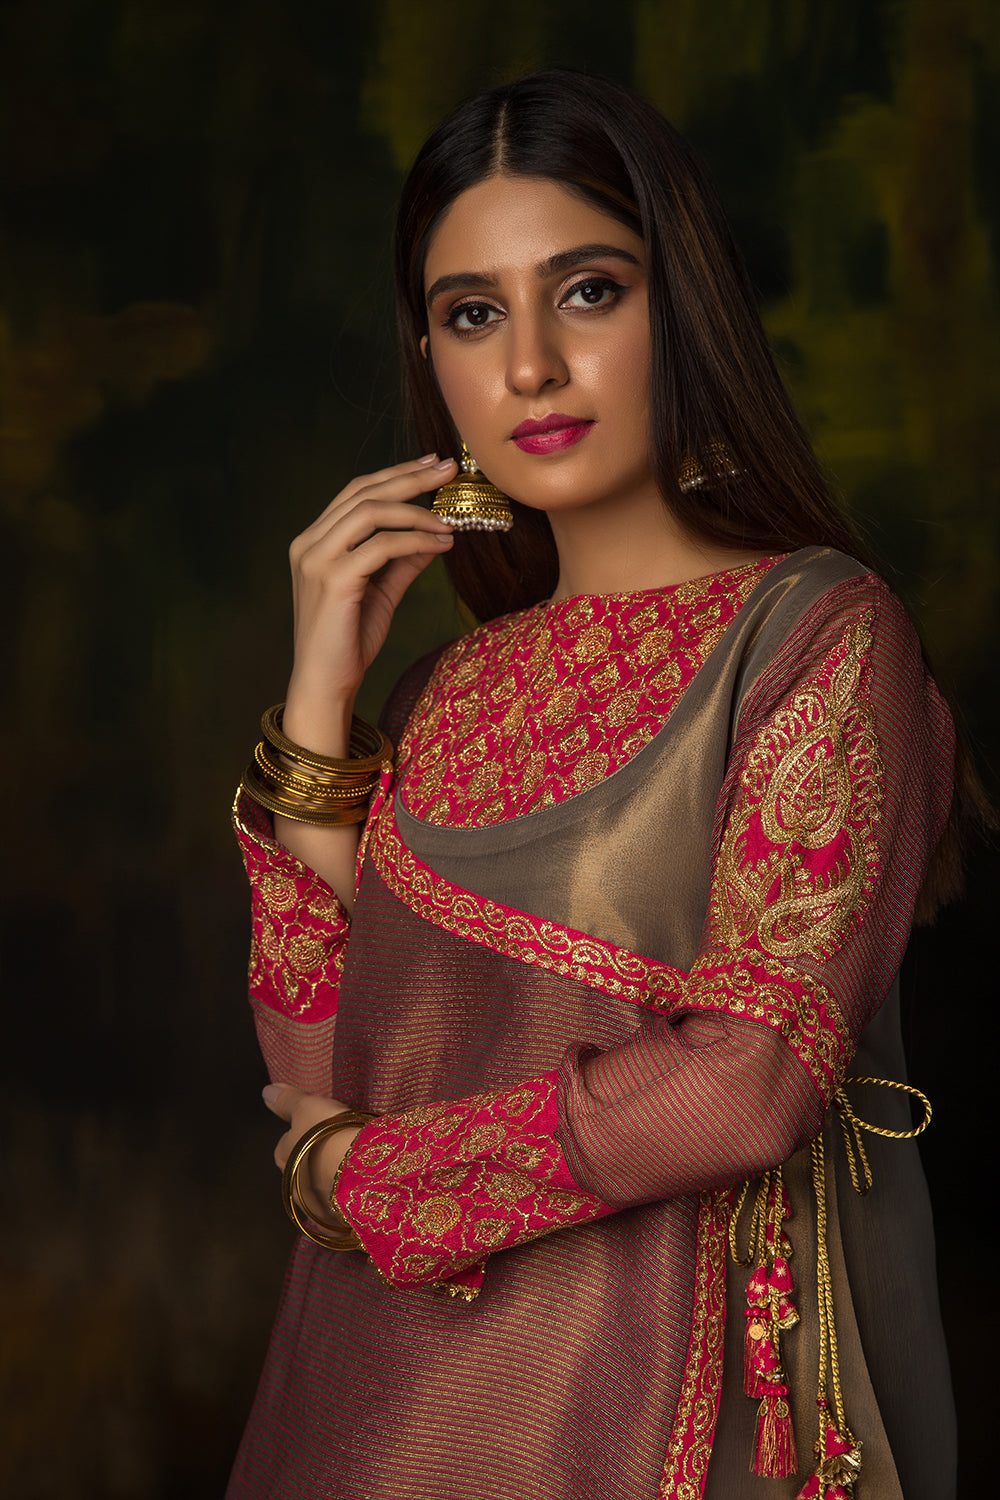 LDD-01310 | Metallic Copper & Shocking Pink | Formal 3 Piece Suit  | Banarsi Jacquard (Metallic)